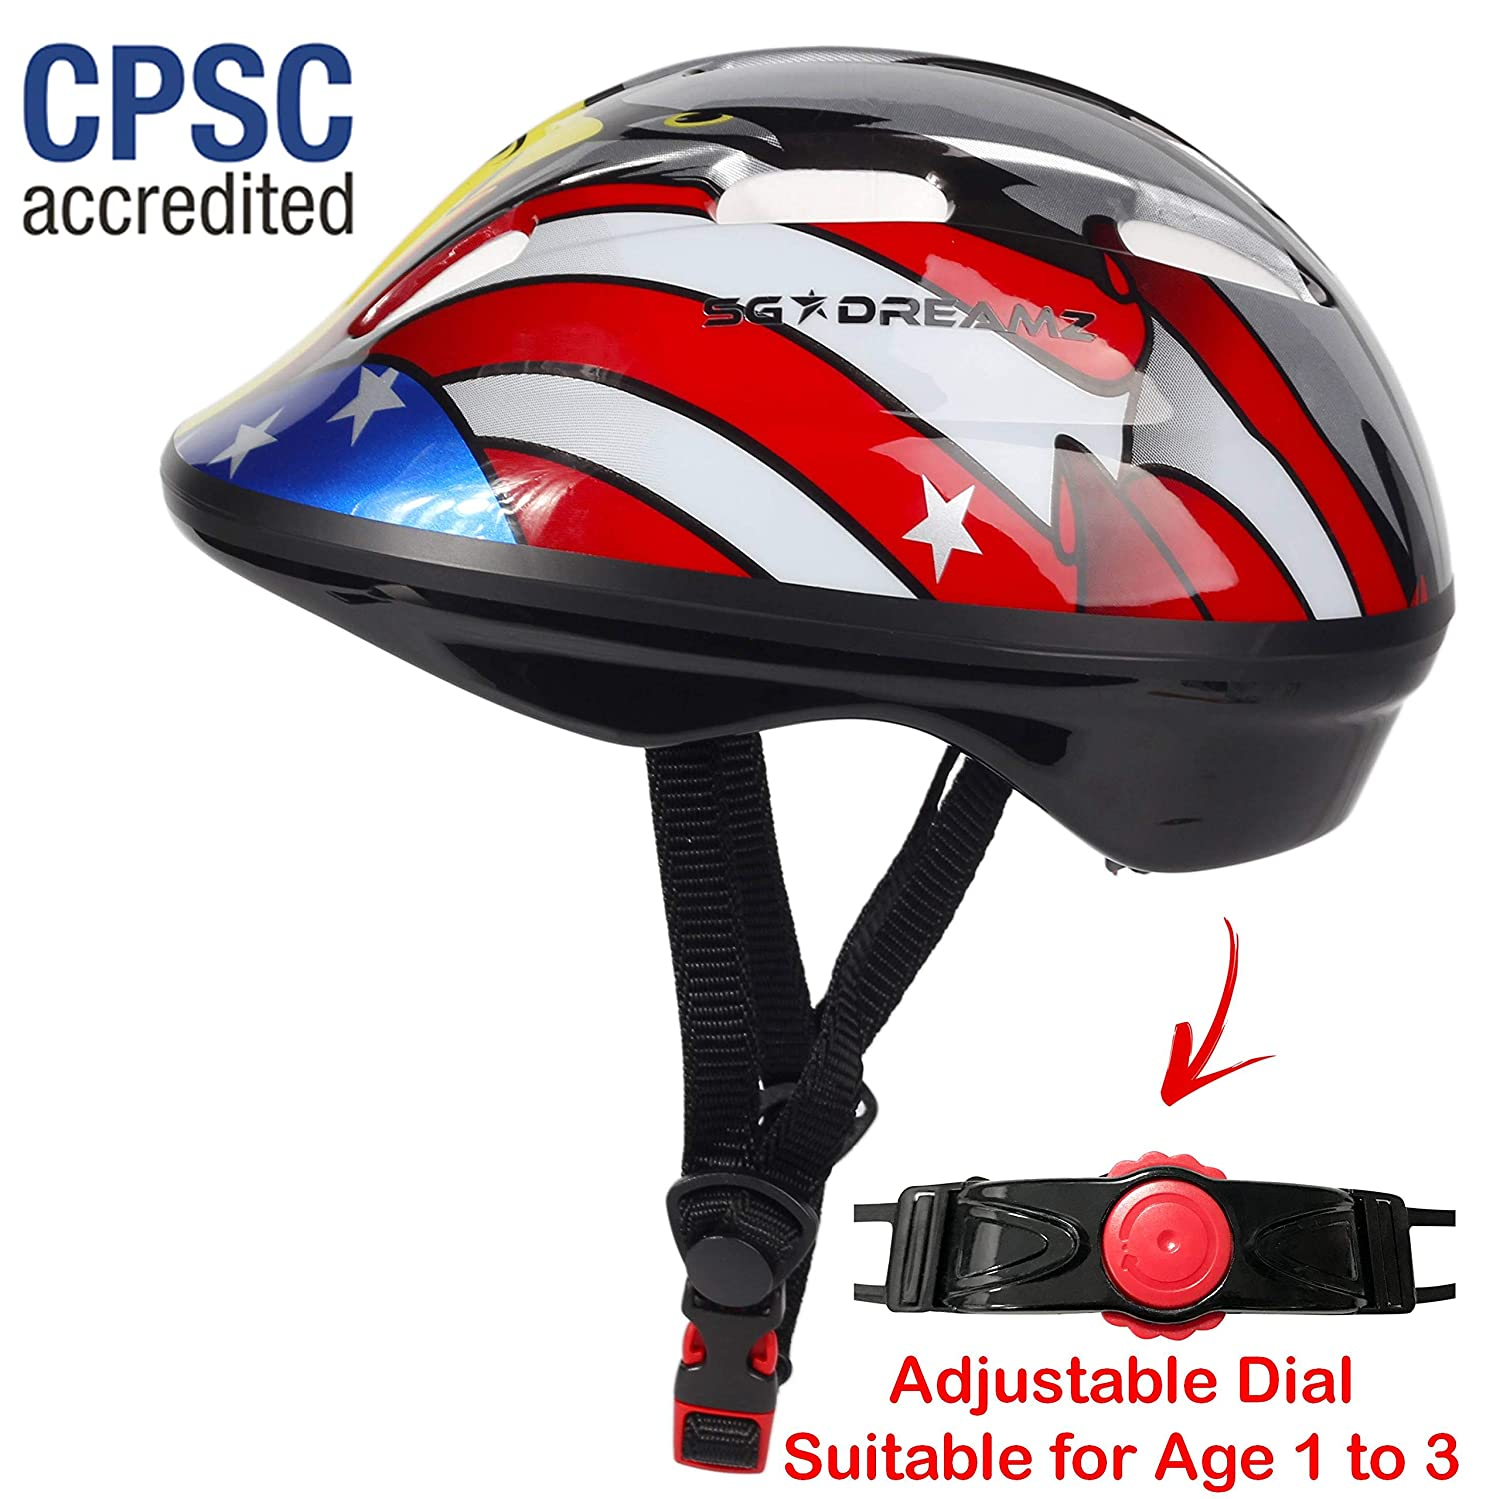 SG Dreamz Toddler Helmet – Adjustable from Infant to Toddler Size, Ages 1 to 3 – CSPC Certified Kids Bike Bicycle Cycling BMX Scooter Roller Skating Helmets Boys and Girls Will Love